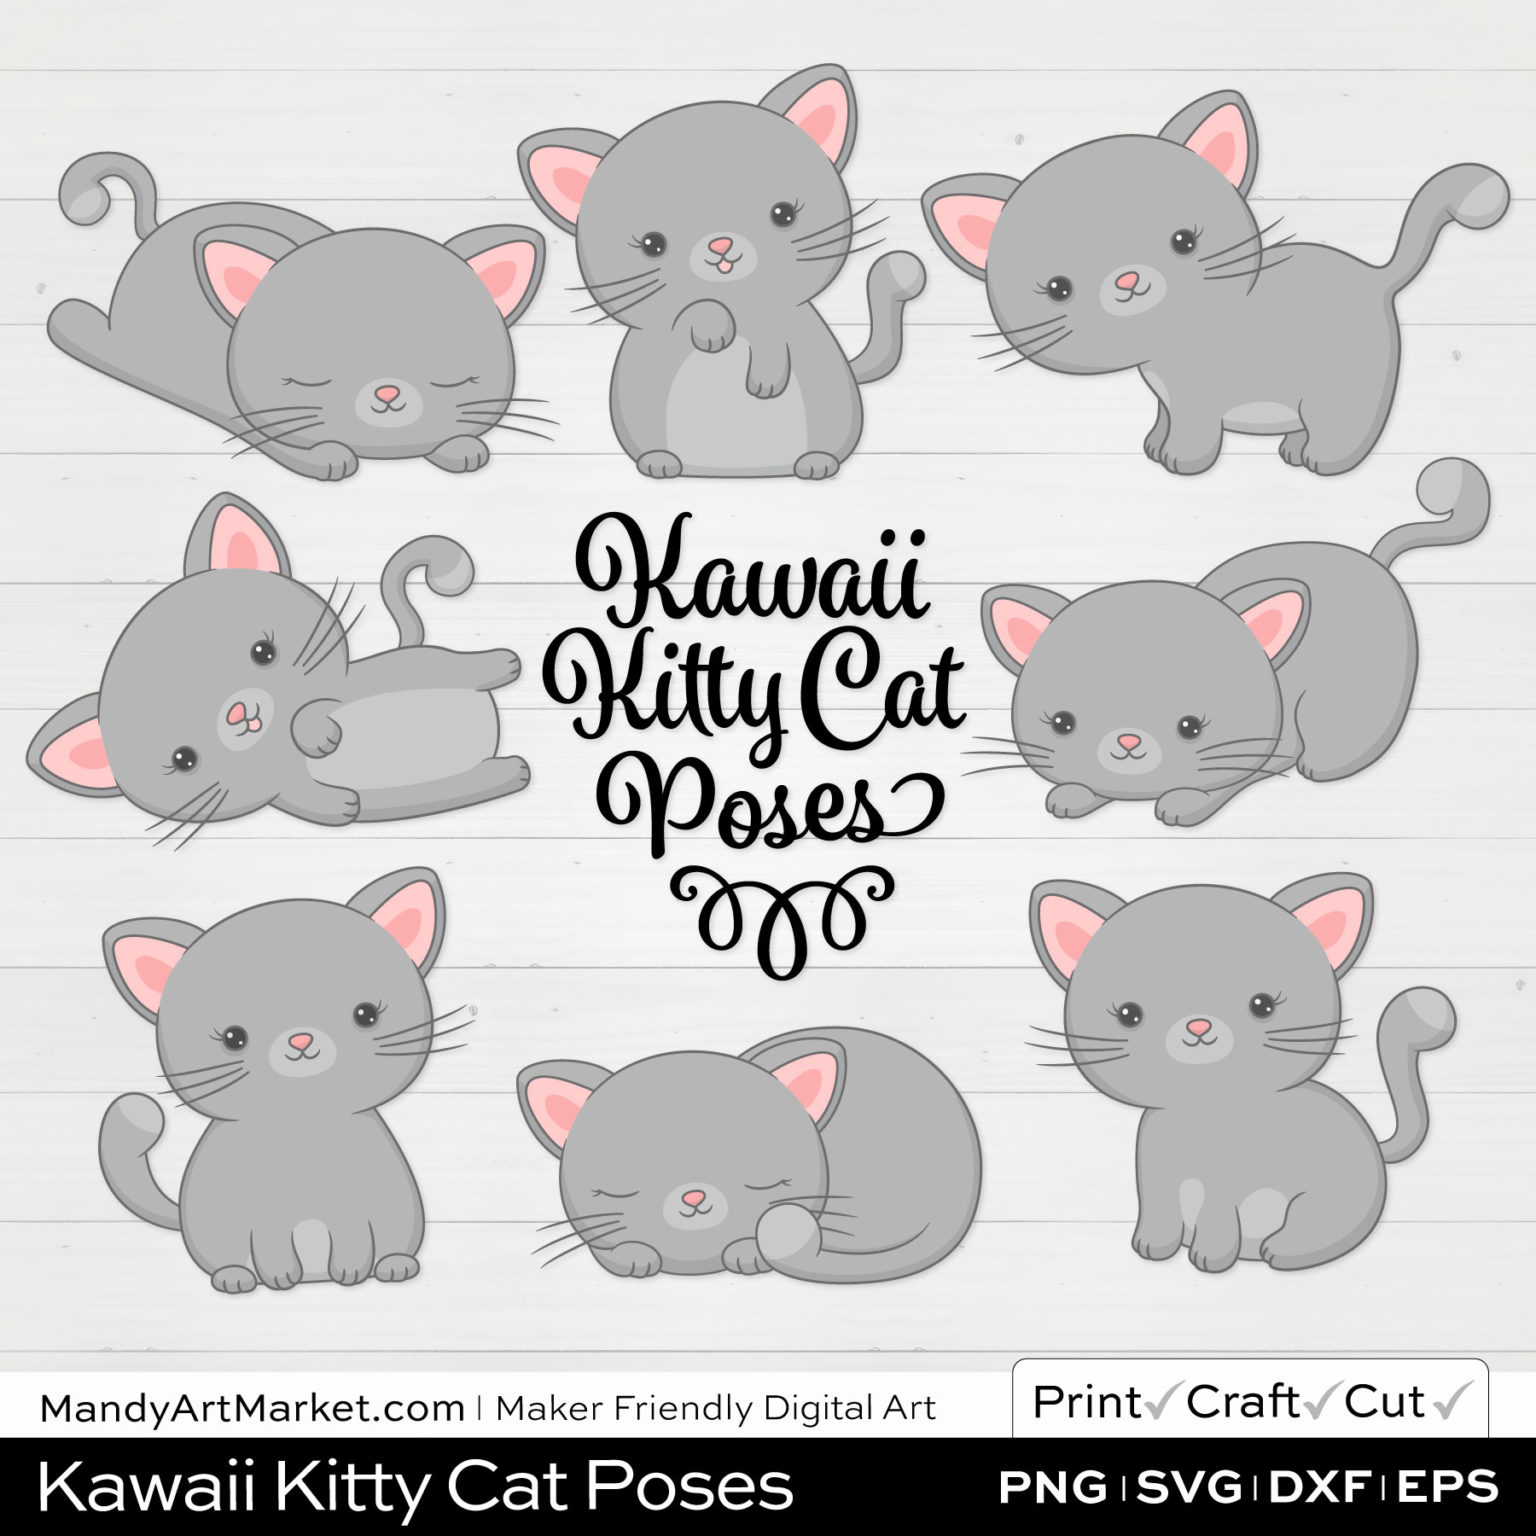 Silver Gray Kawaii Kitty Cat Poses Clipart on White Background